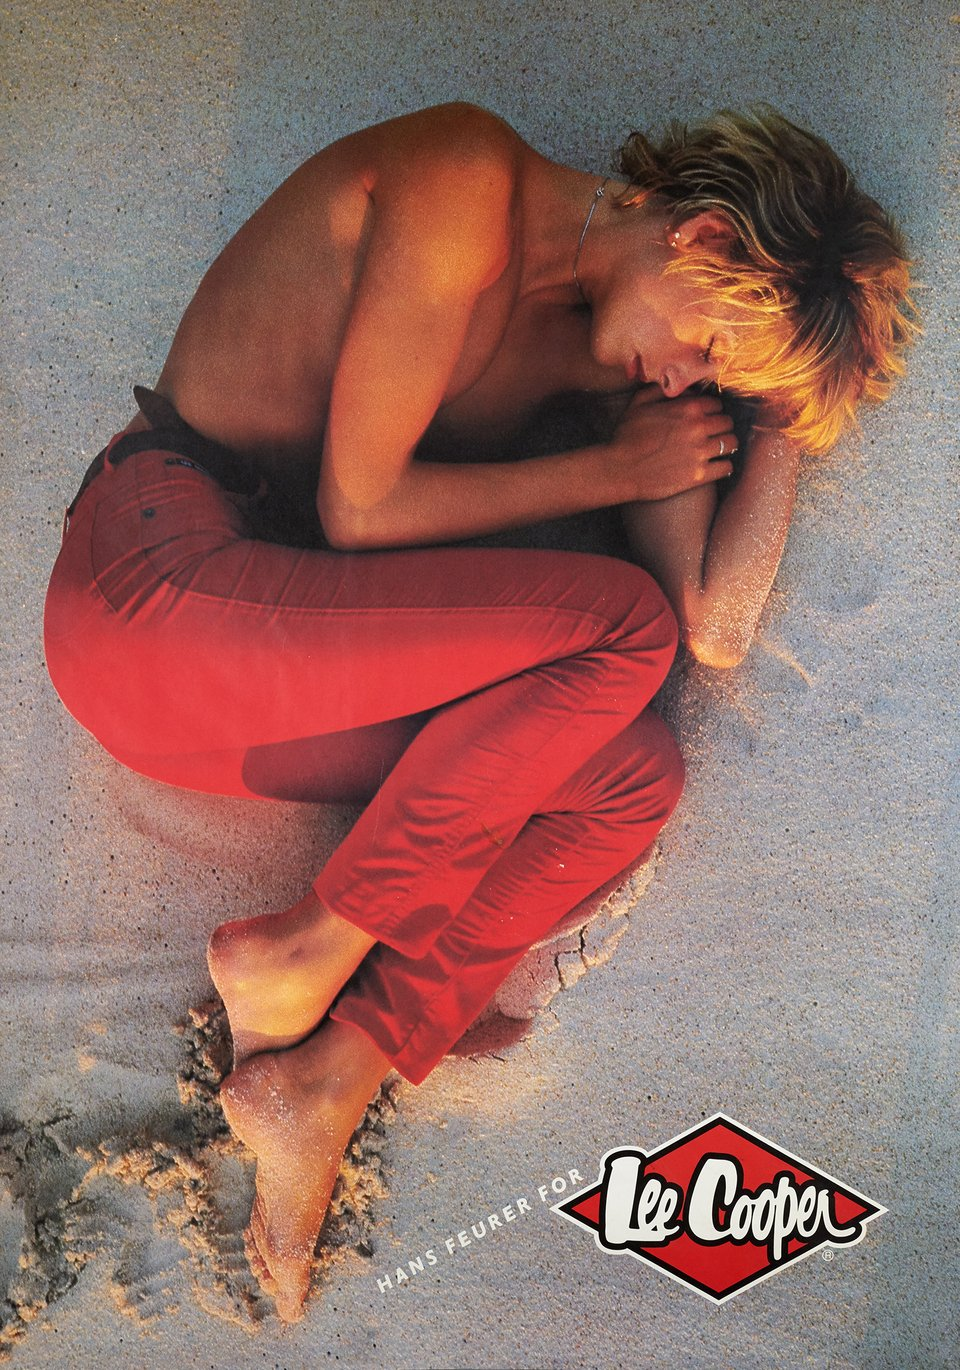 Hans Feuer for Lee Cooper – Affiche ancienne –  ANONYME – 1980